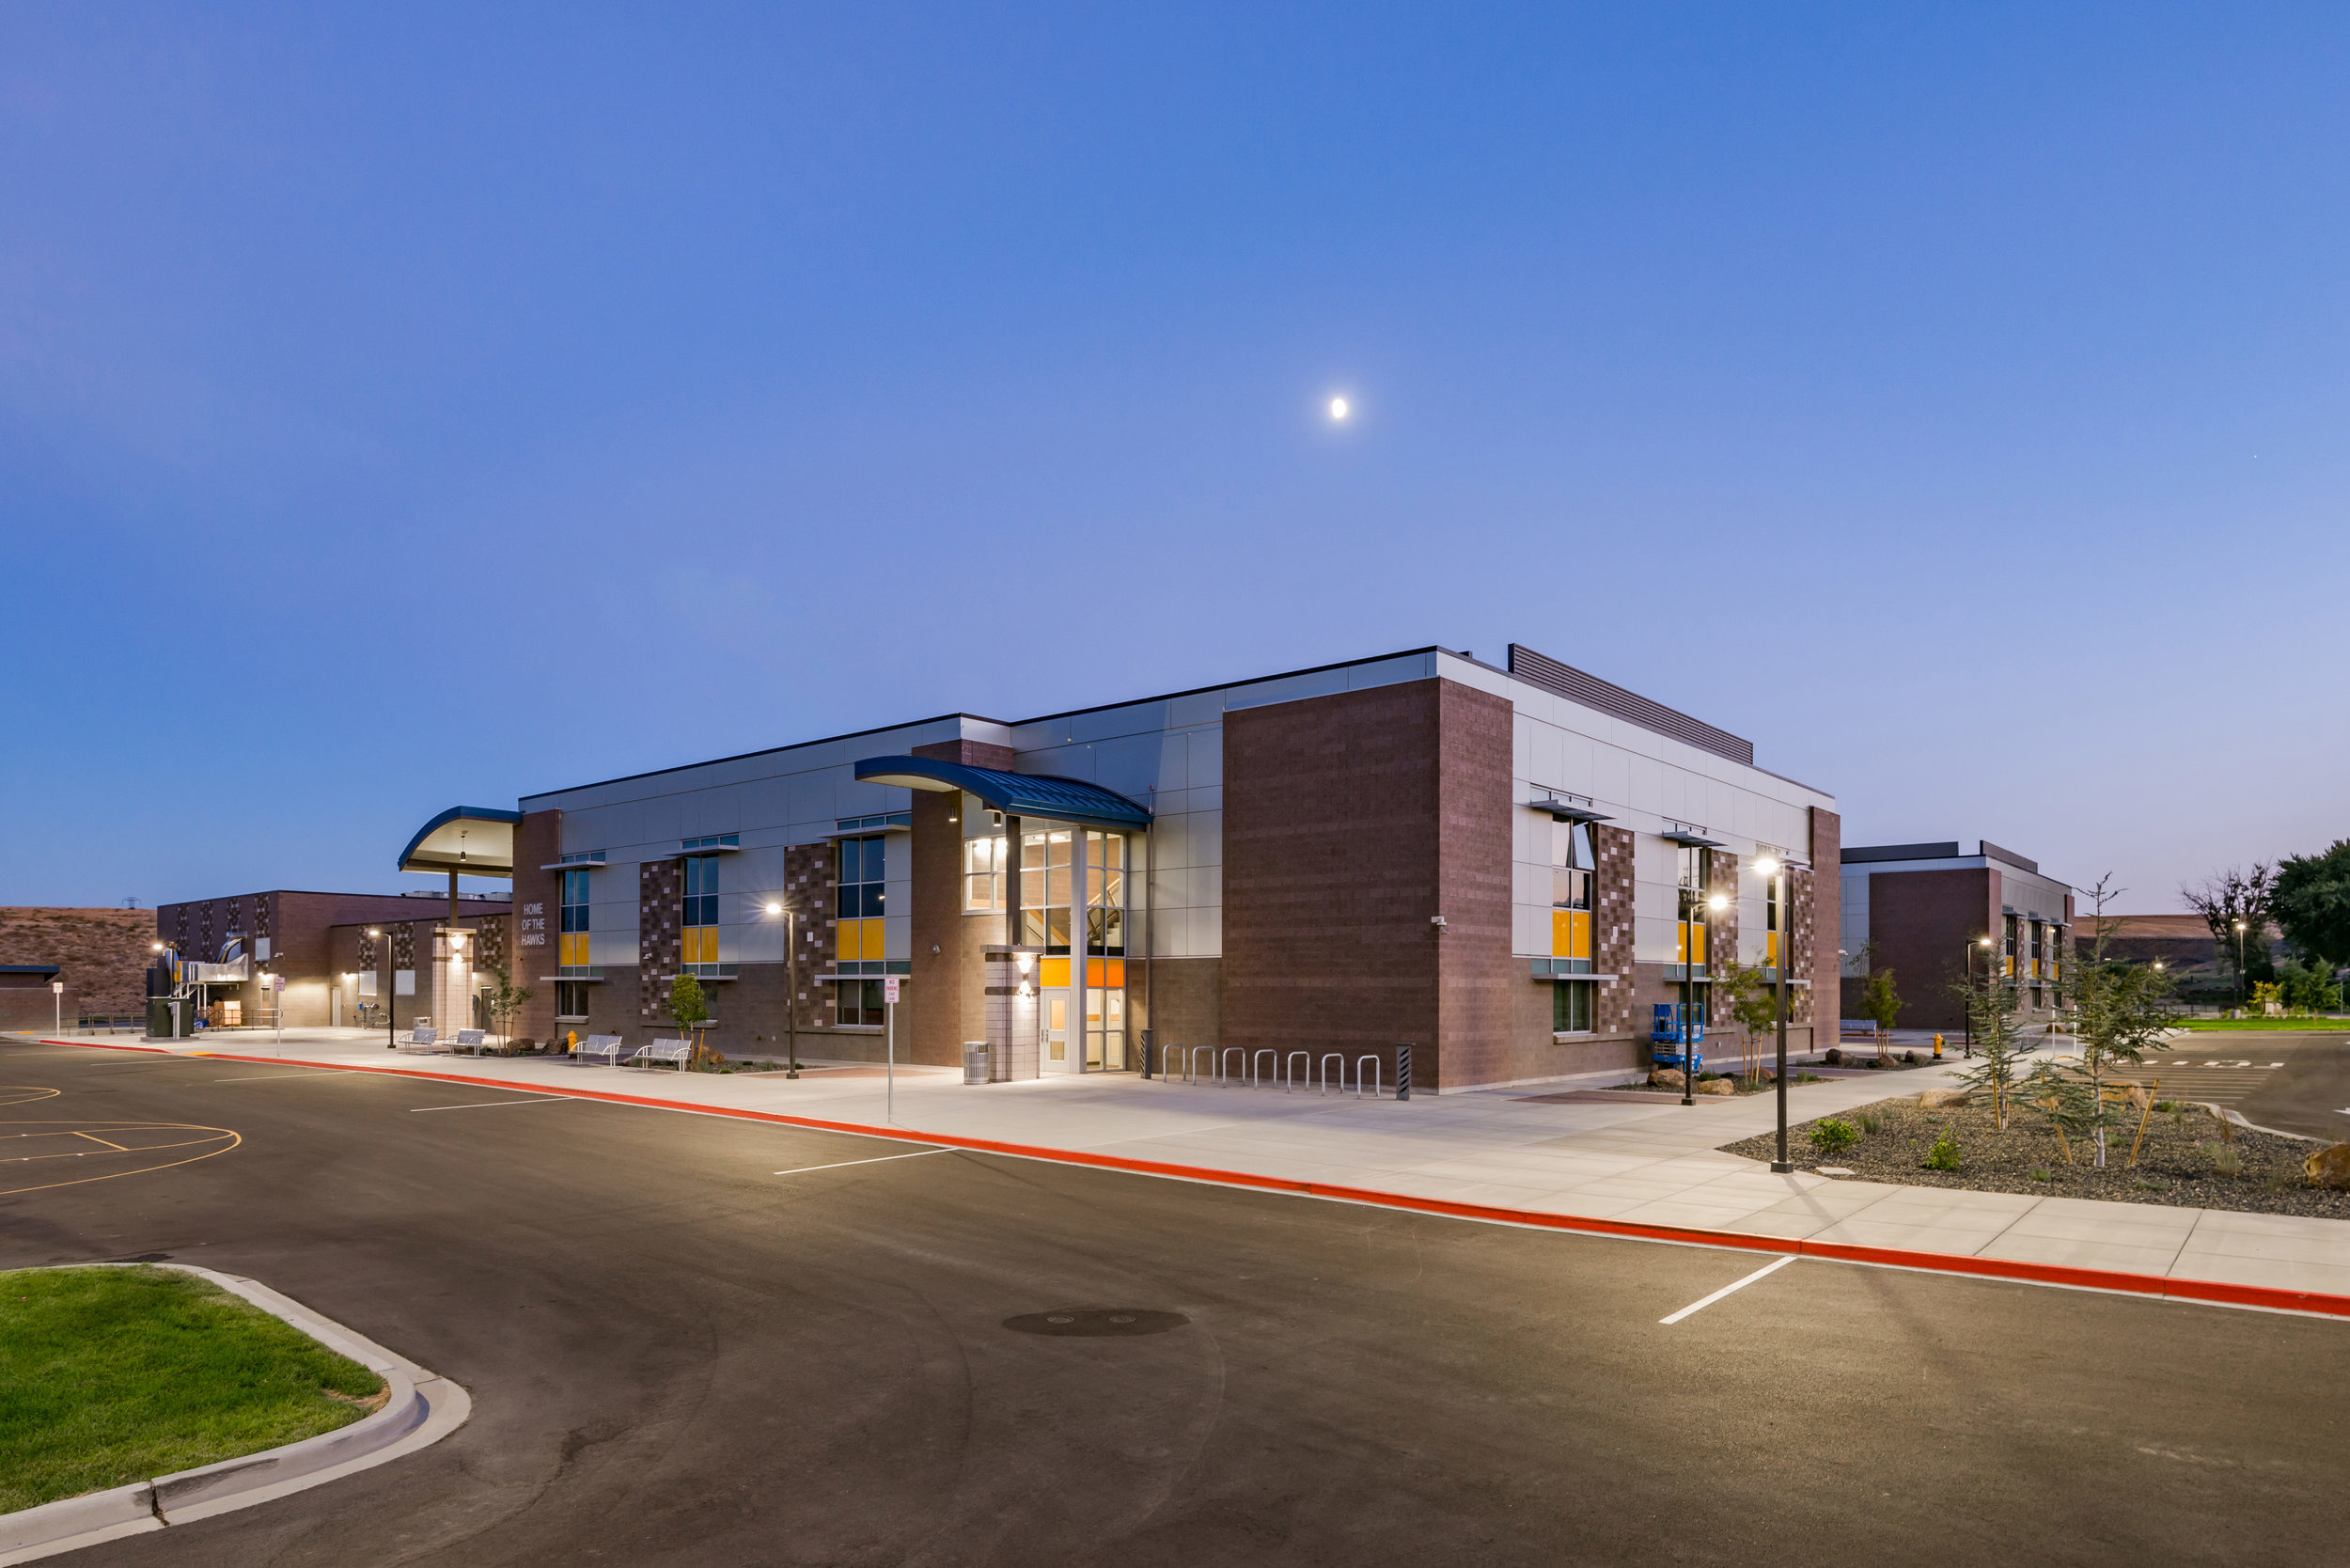 Owner: Kennewick School District Location: Kennewick, WA   This 110,000 sf facility is a combination of one and two-story spaces, with a center gymnasium core that opens up onto the adjacent student cafeteria/ commons area. The compact footprint of the building is beneficial for a prototype building, making it adaptable to each site topography.